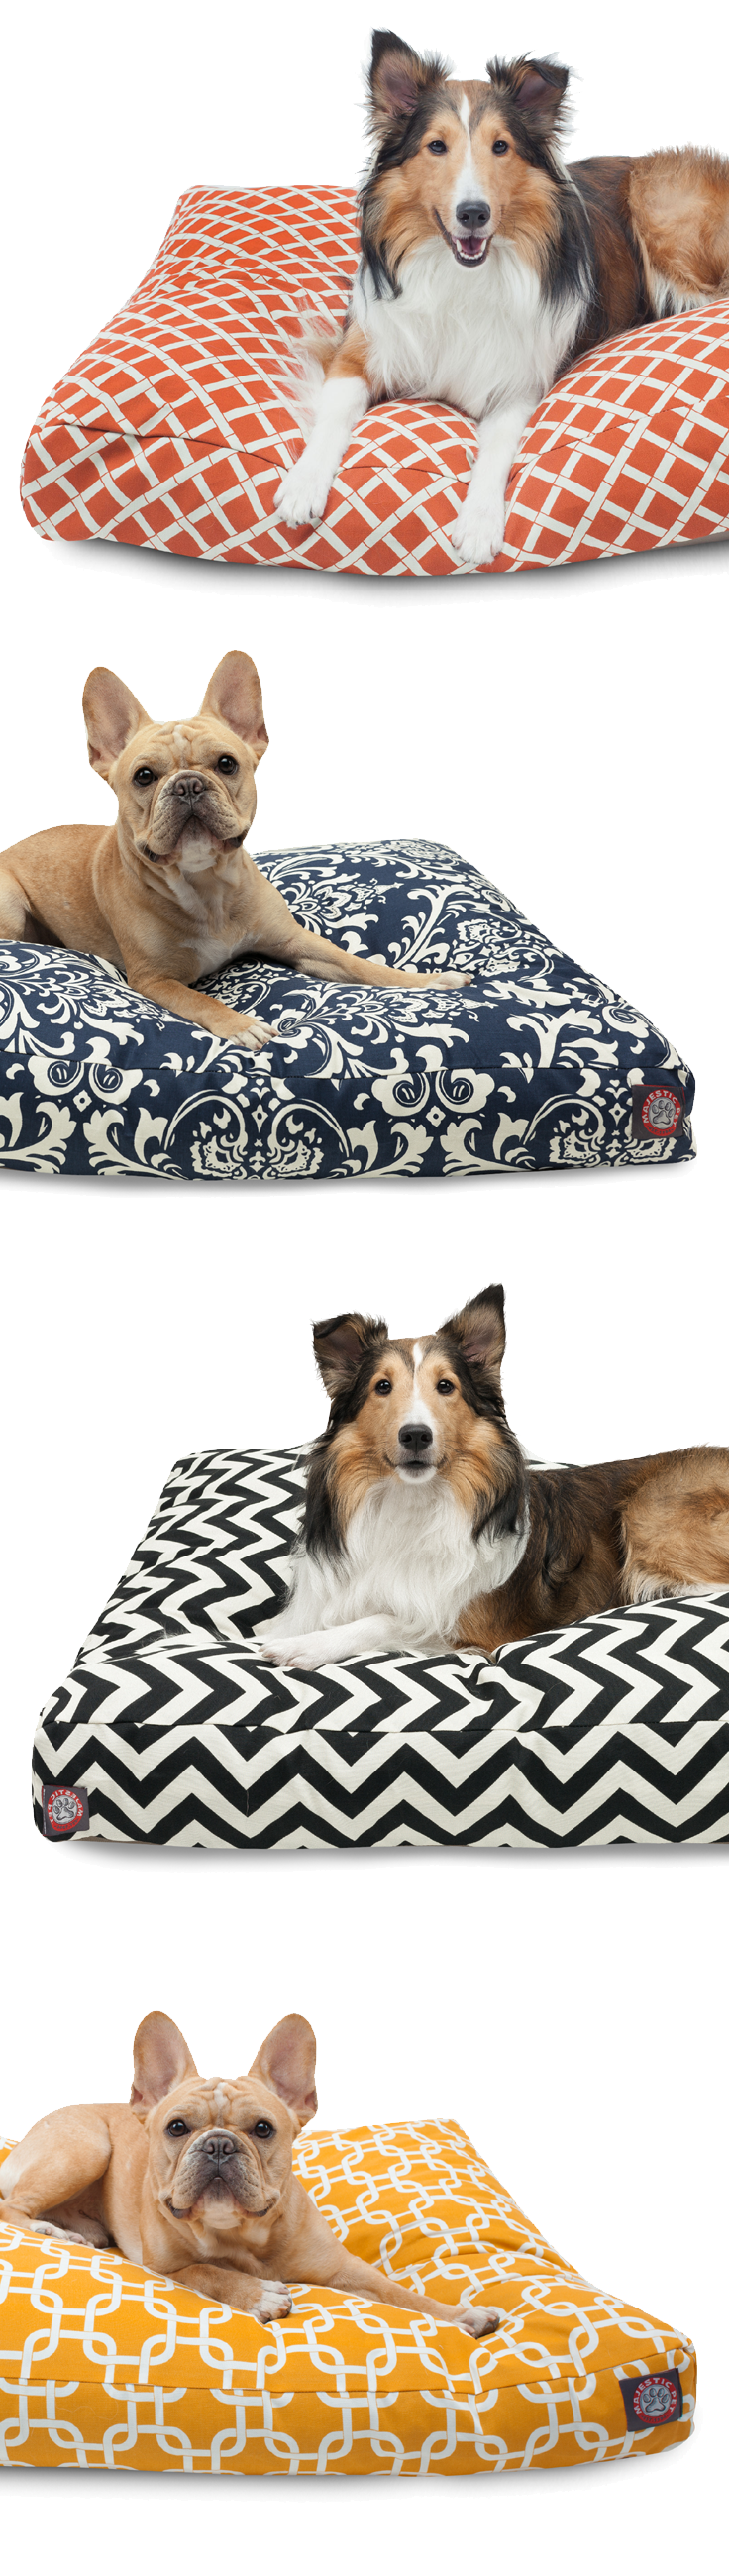 Make your pup's dreams come true with our Majestic beds